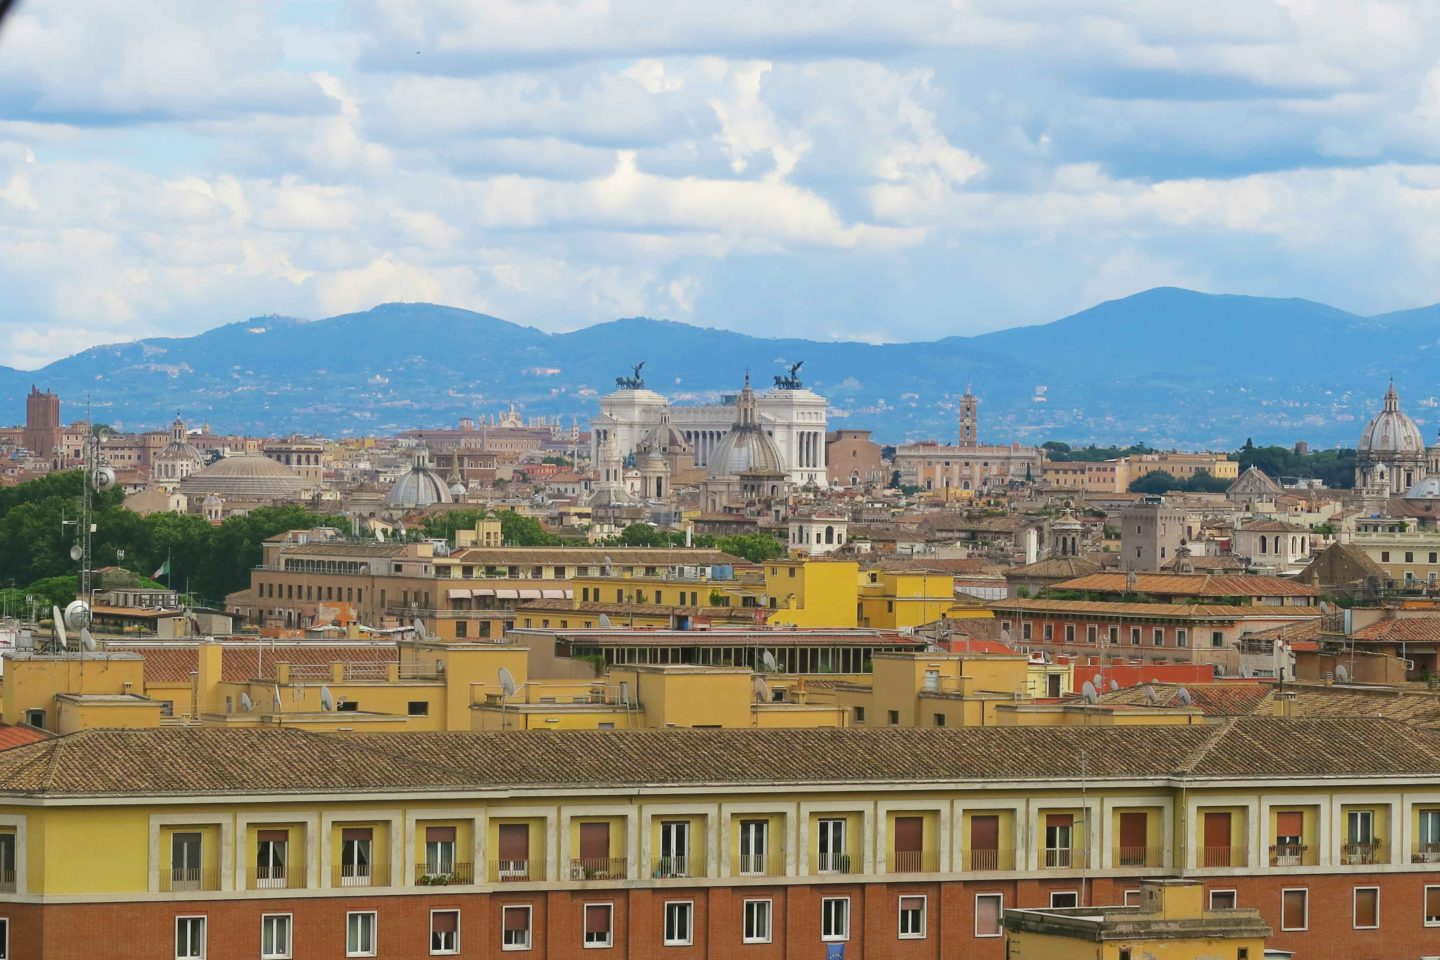 rome skyline with mountains in the backdrop